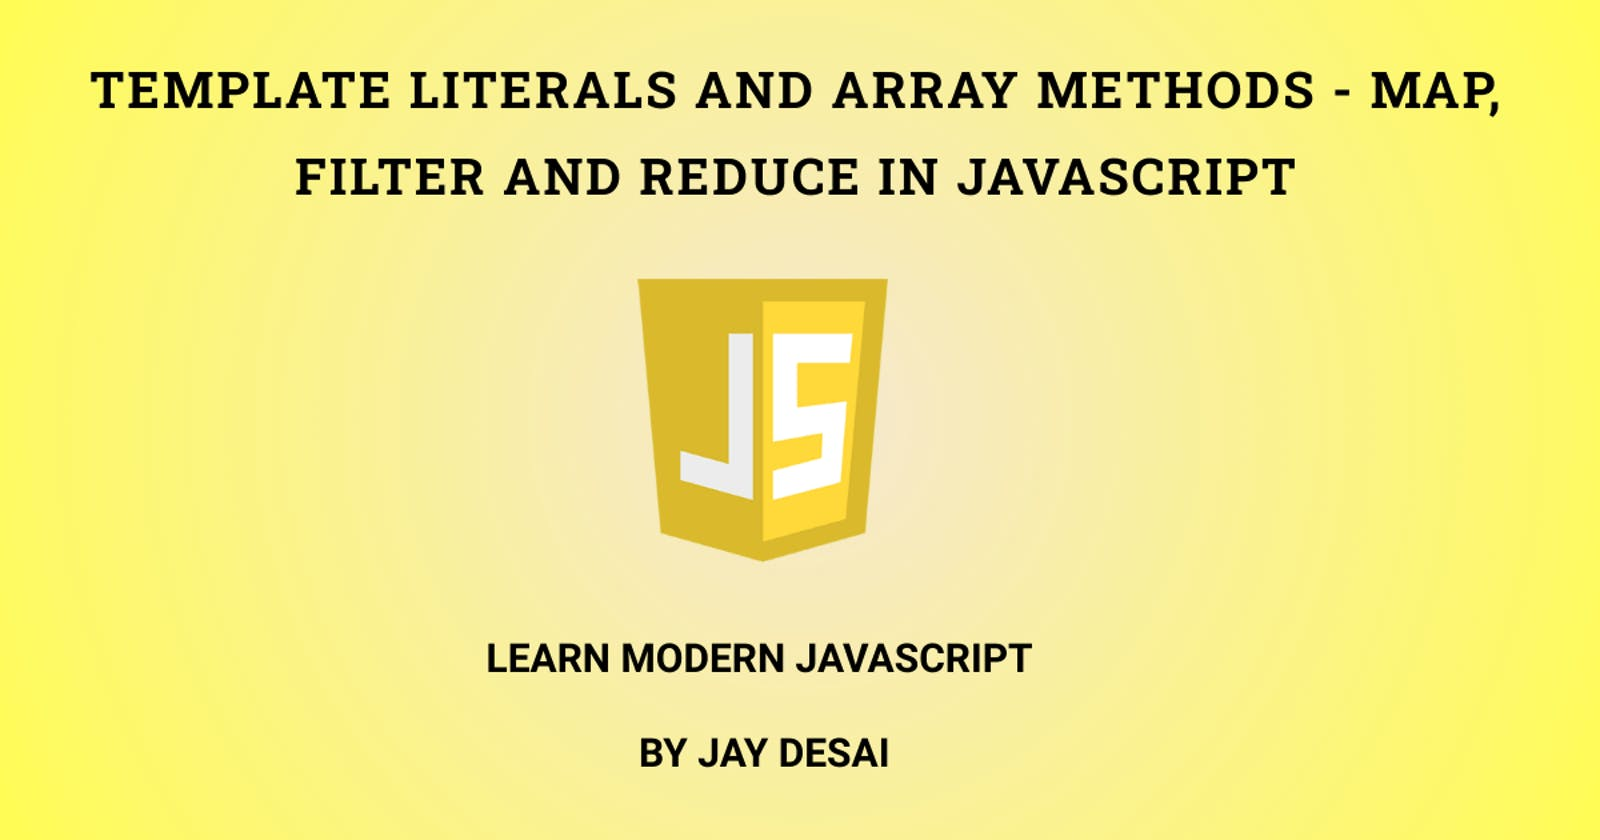 Map, Filter, Reduce and Template Literals in JavaScript